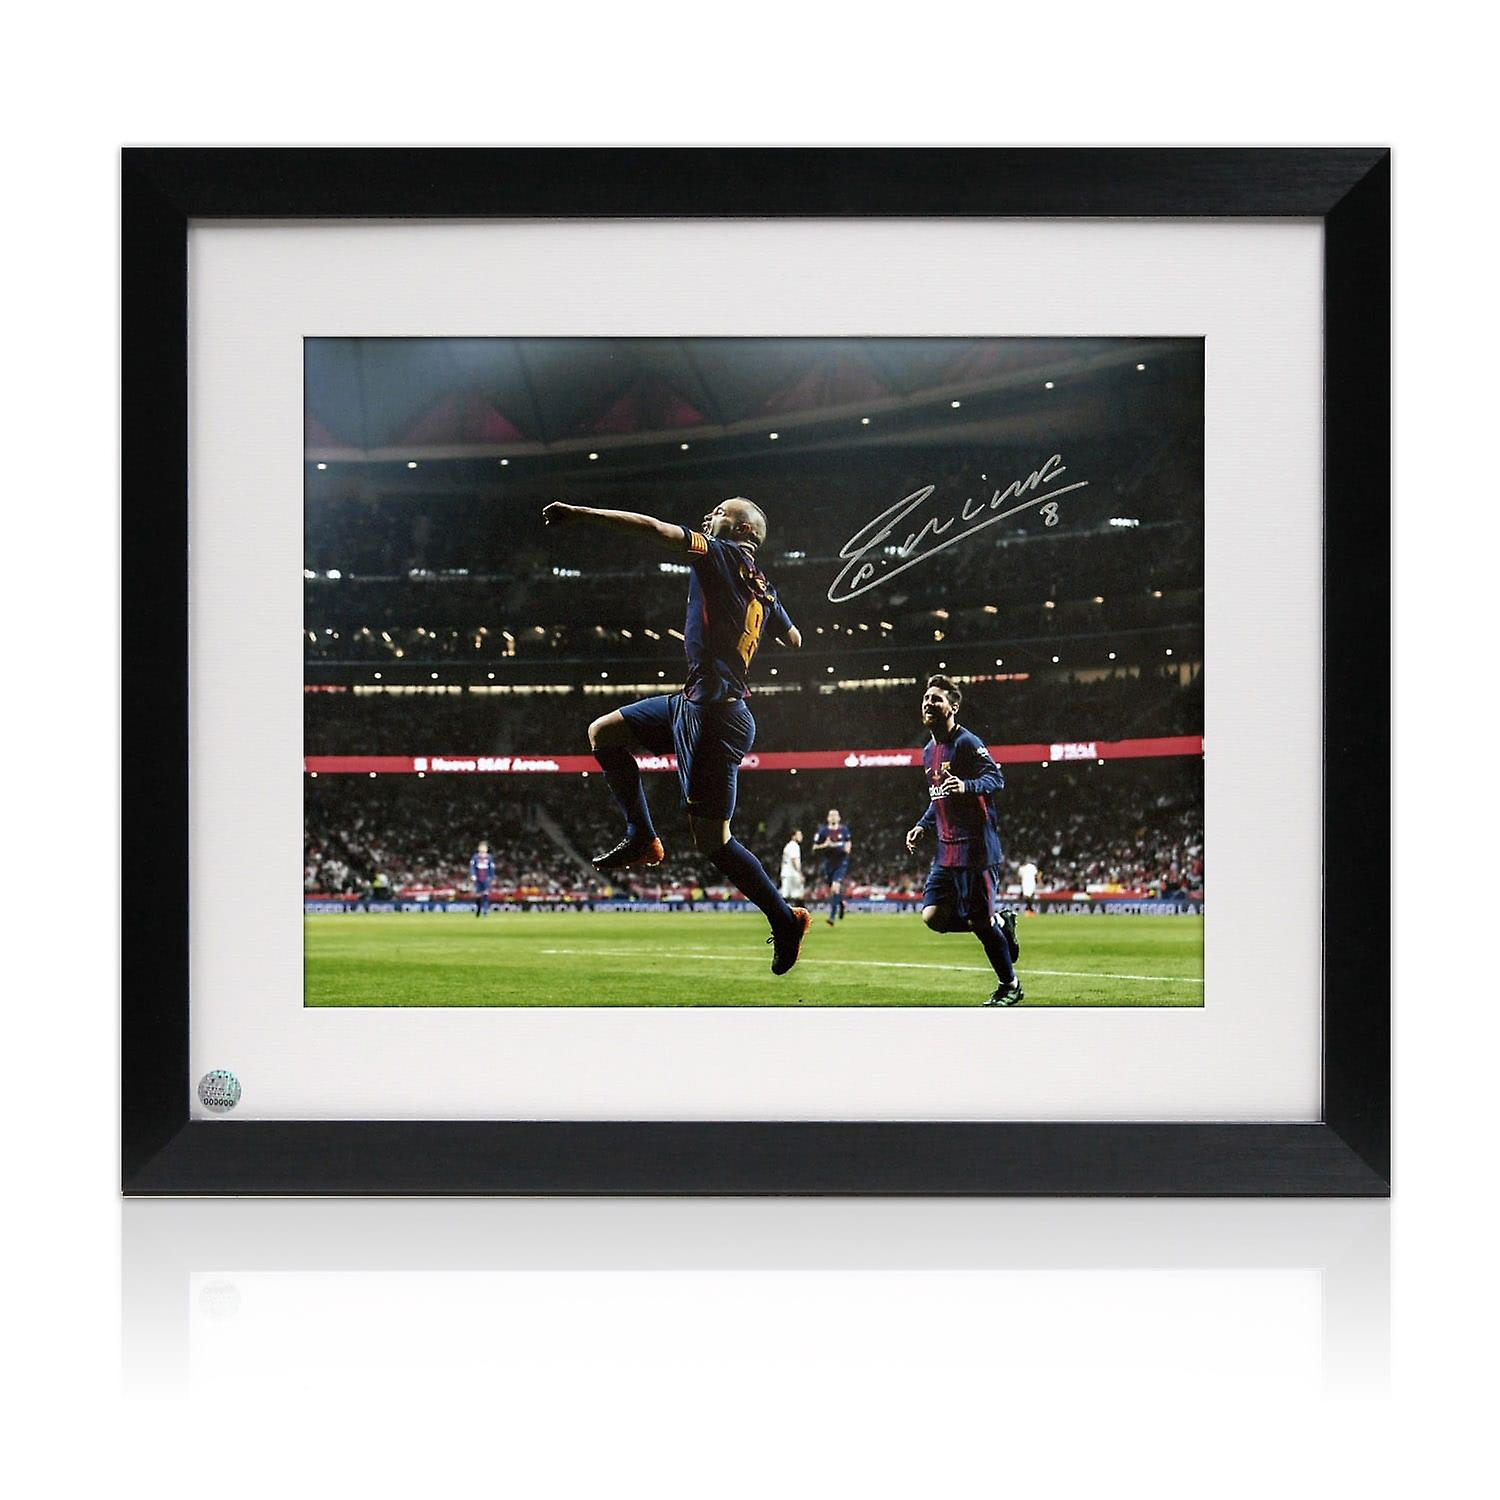 Andres Iniesta Signed Barcelona Photo: Copa Del Rey Final. Framed